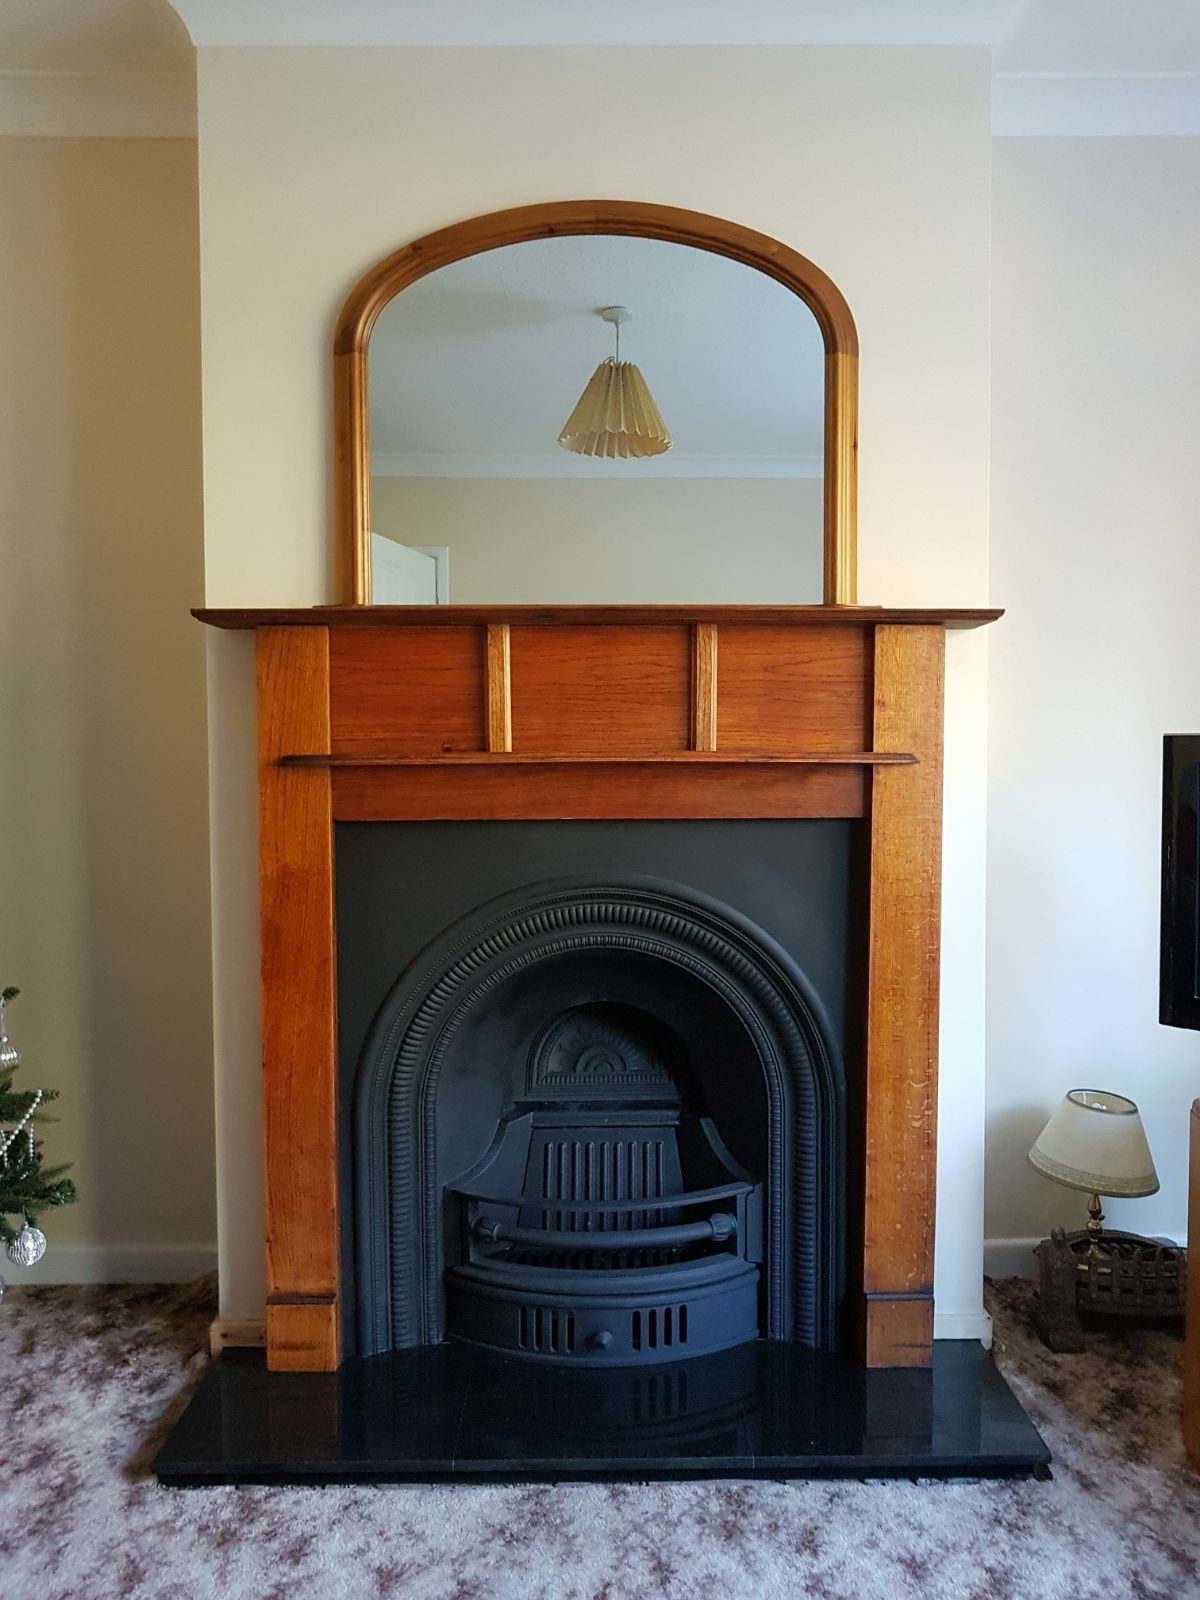 installation of collingham black cast iron on a black granite hearth